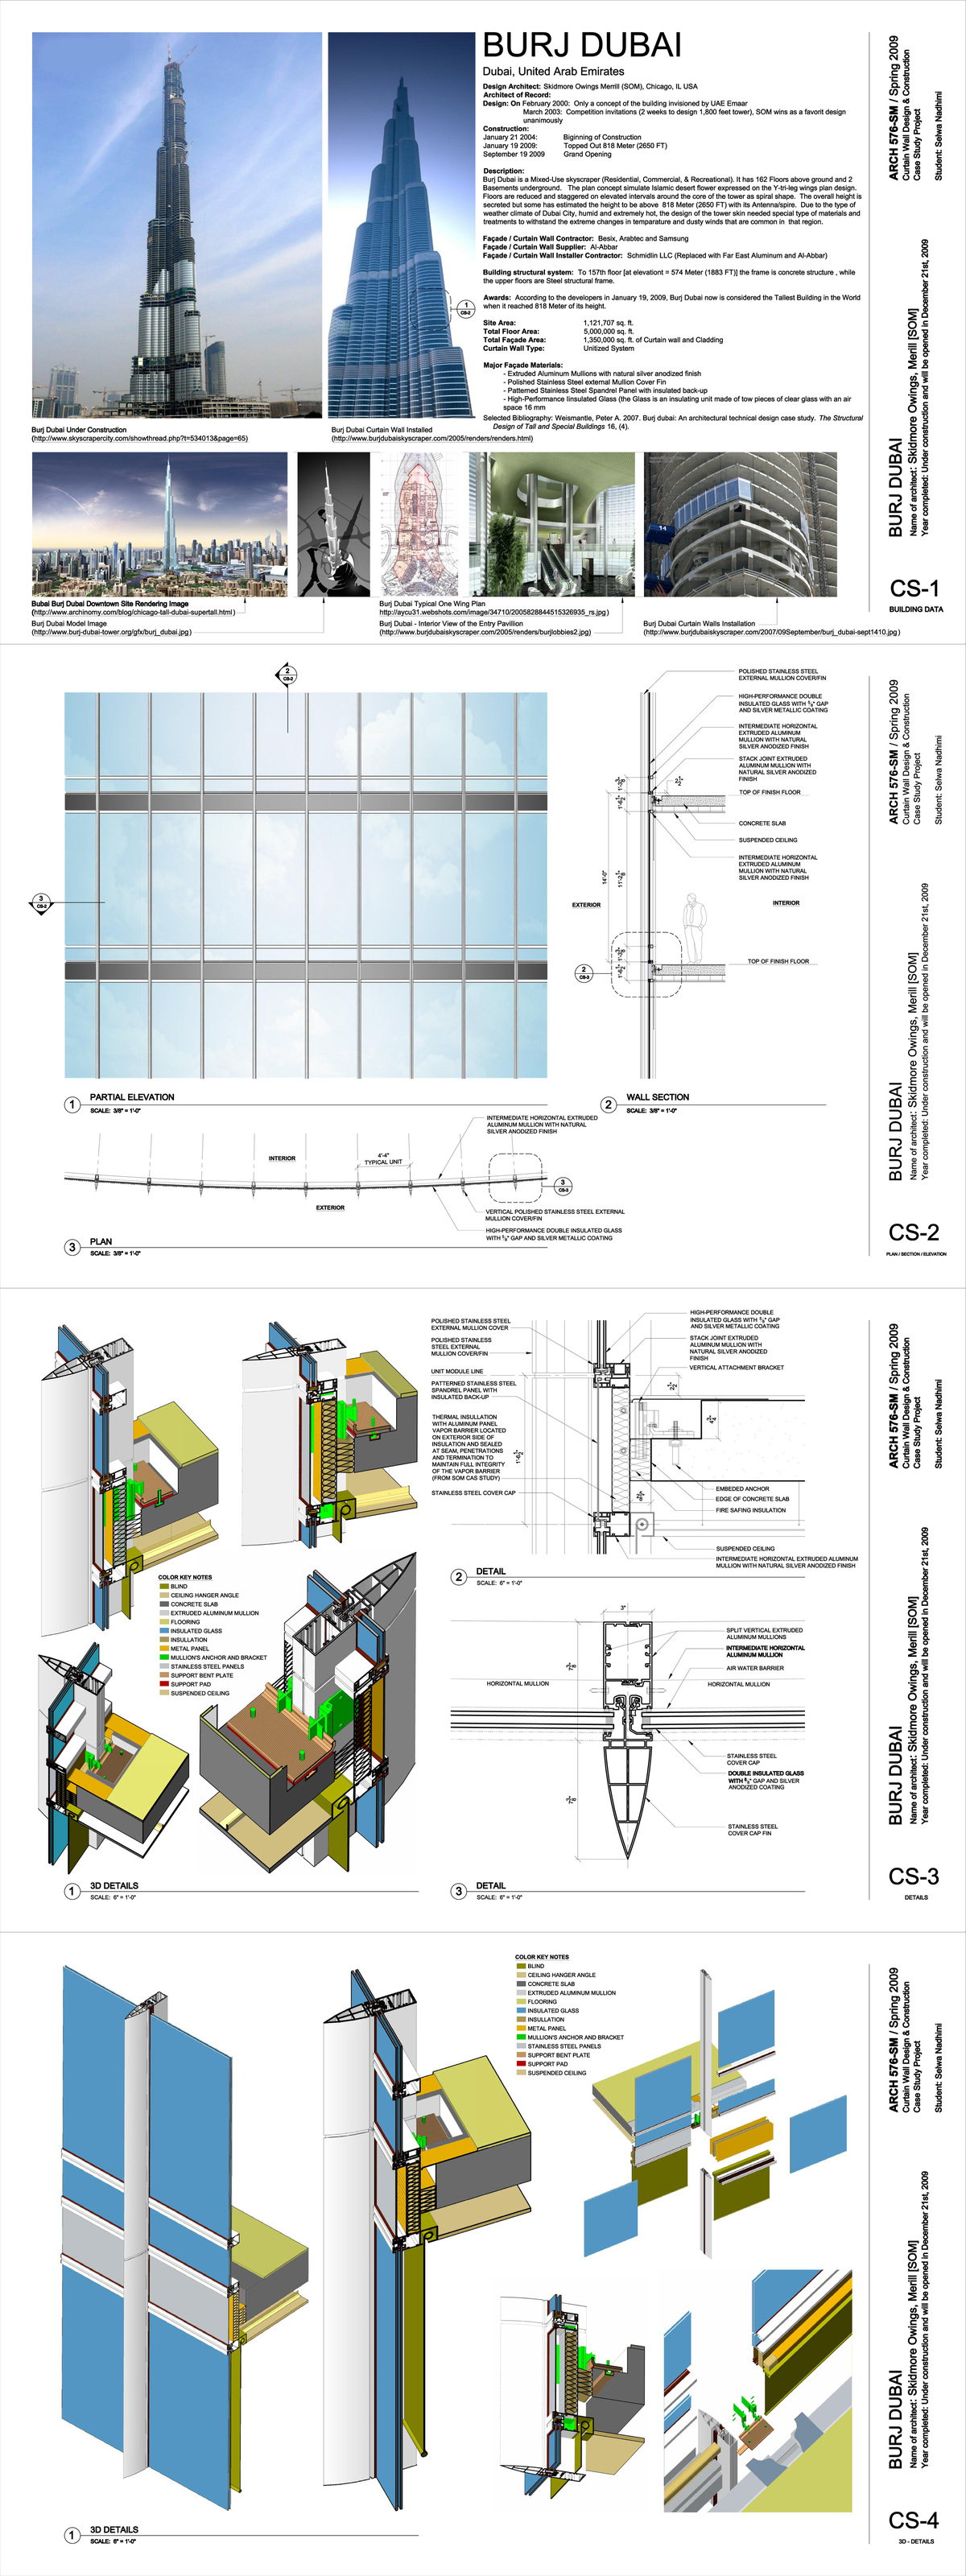 MASTERS IN ARCHITECTURE_CURTAIN WALLS CASE STUDY PROJECT